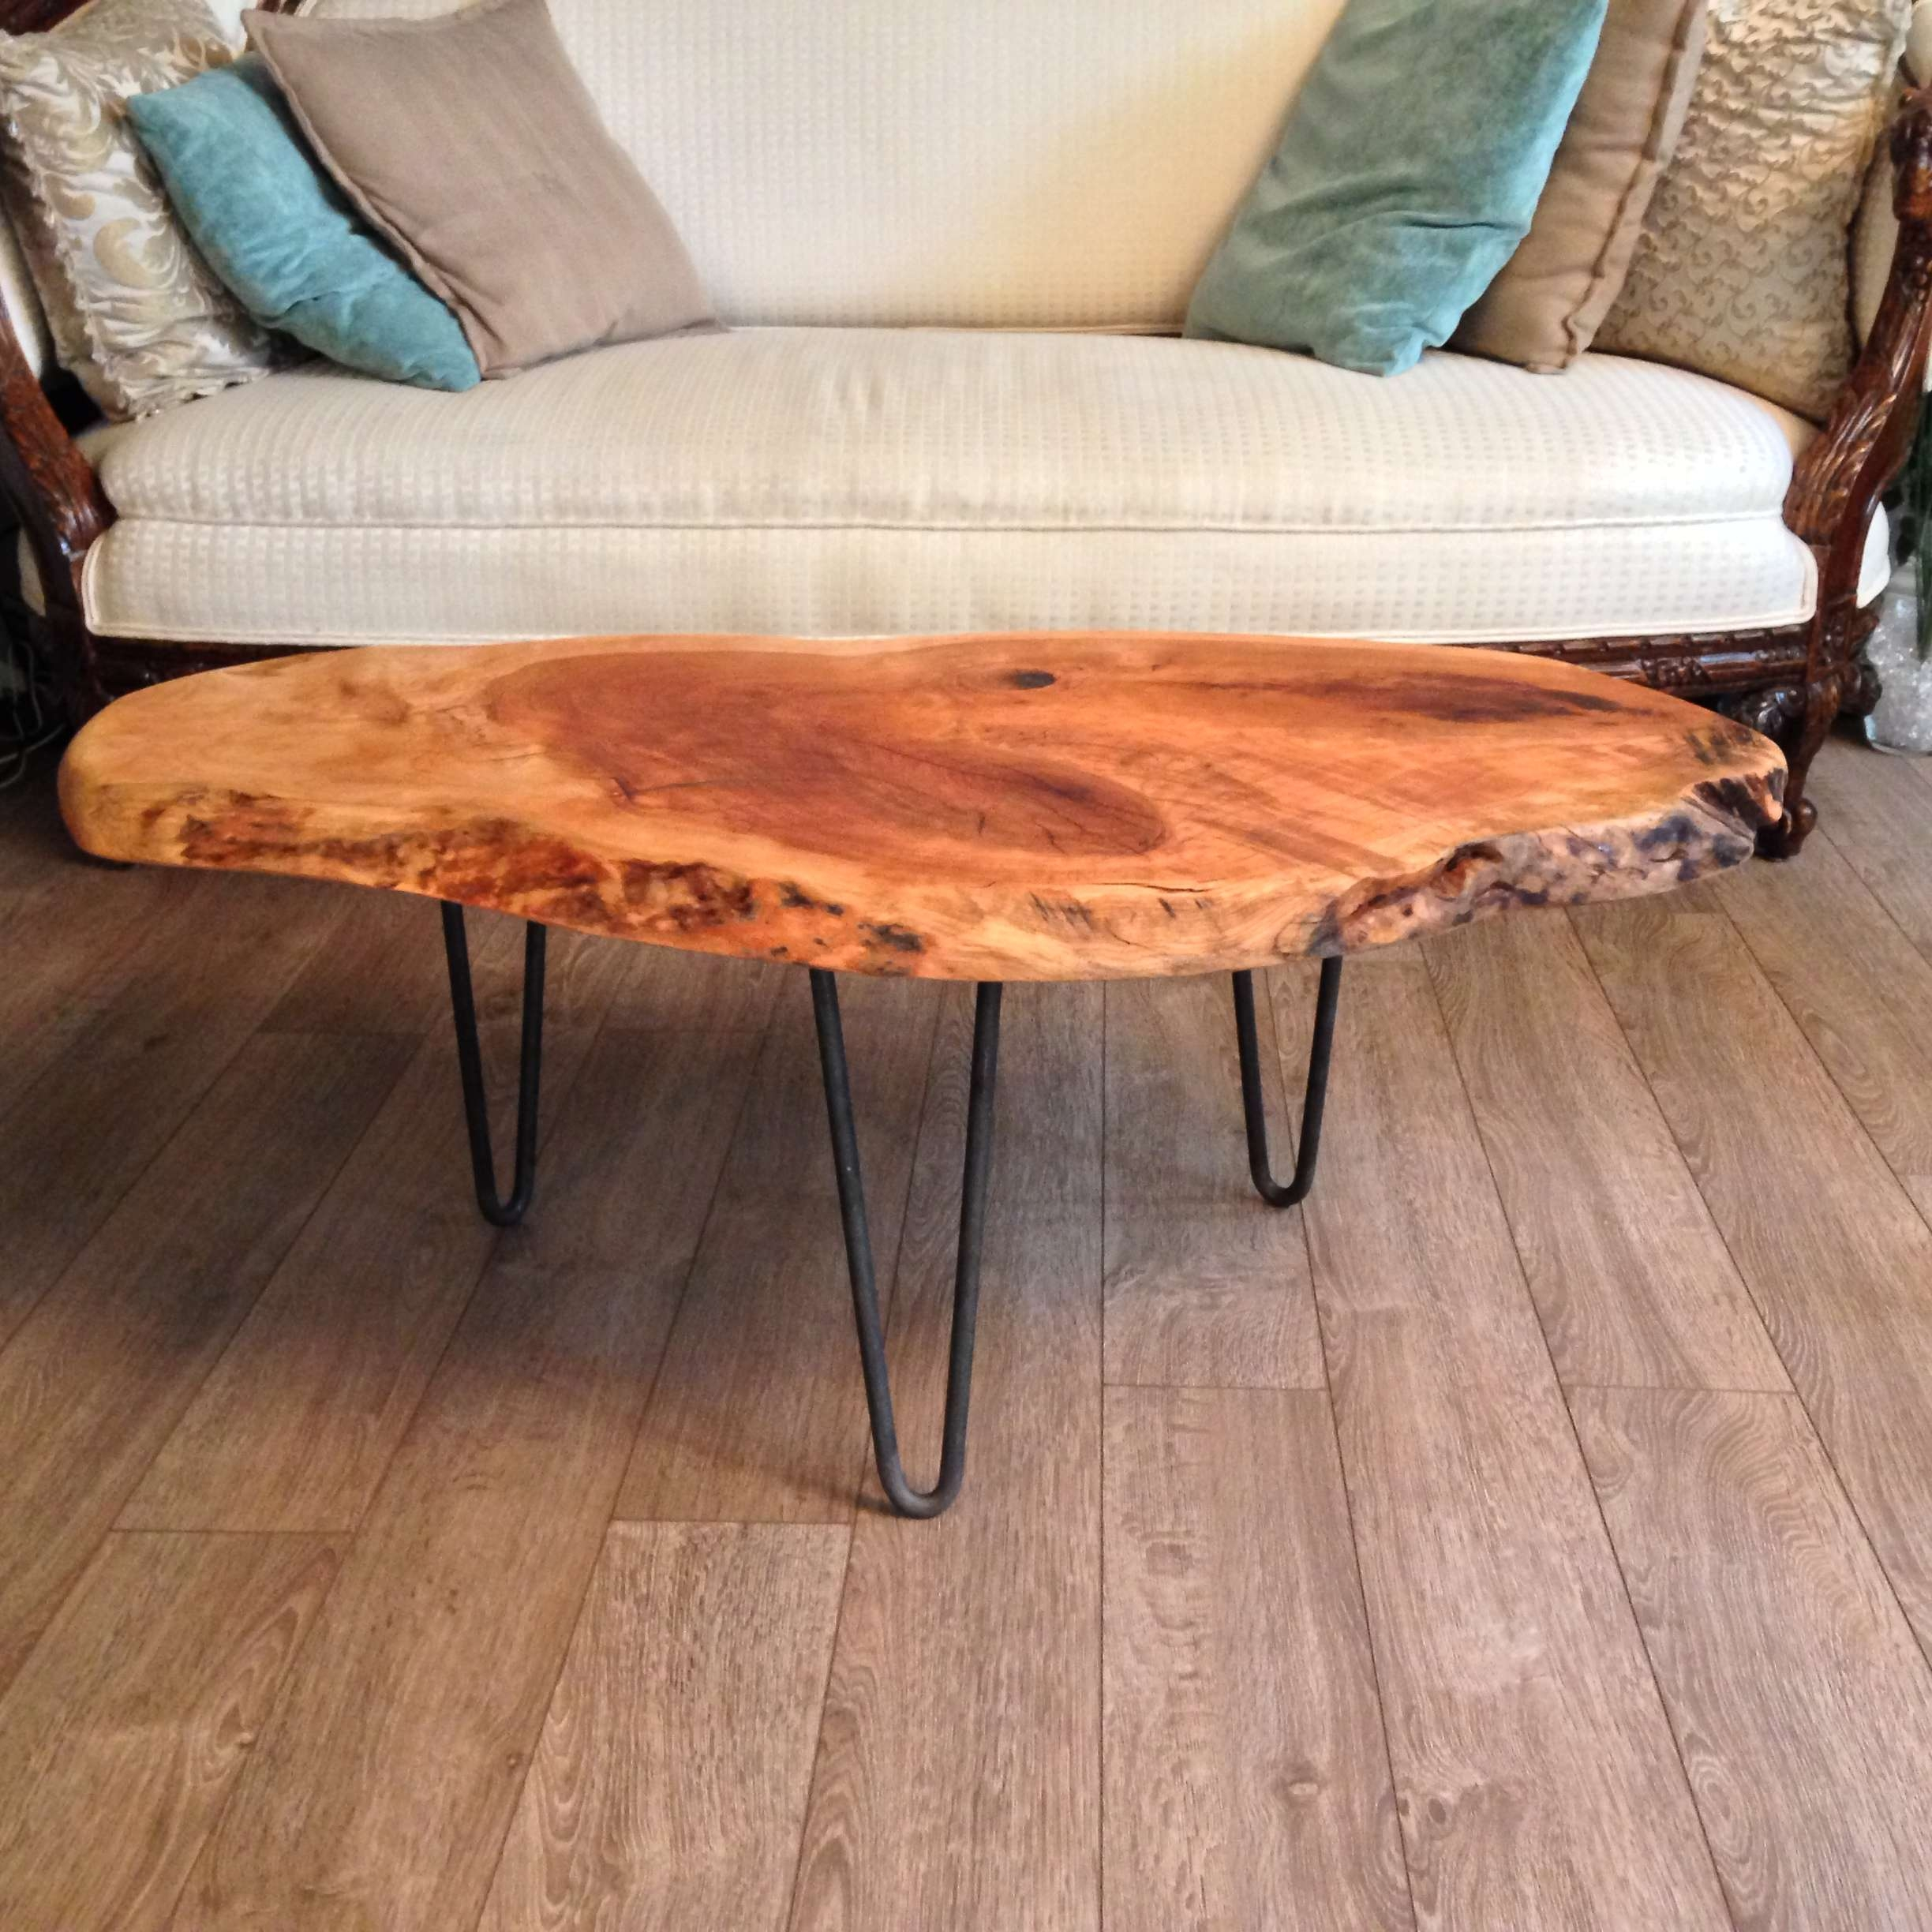 2018 Live Edge Coffee Tables Throughout Live Edge Cherry Knot Coffee Table – Aj's Antique Revival (View 2 of 20)